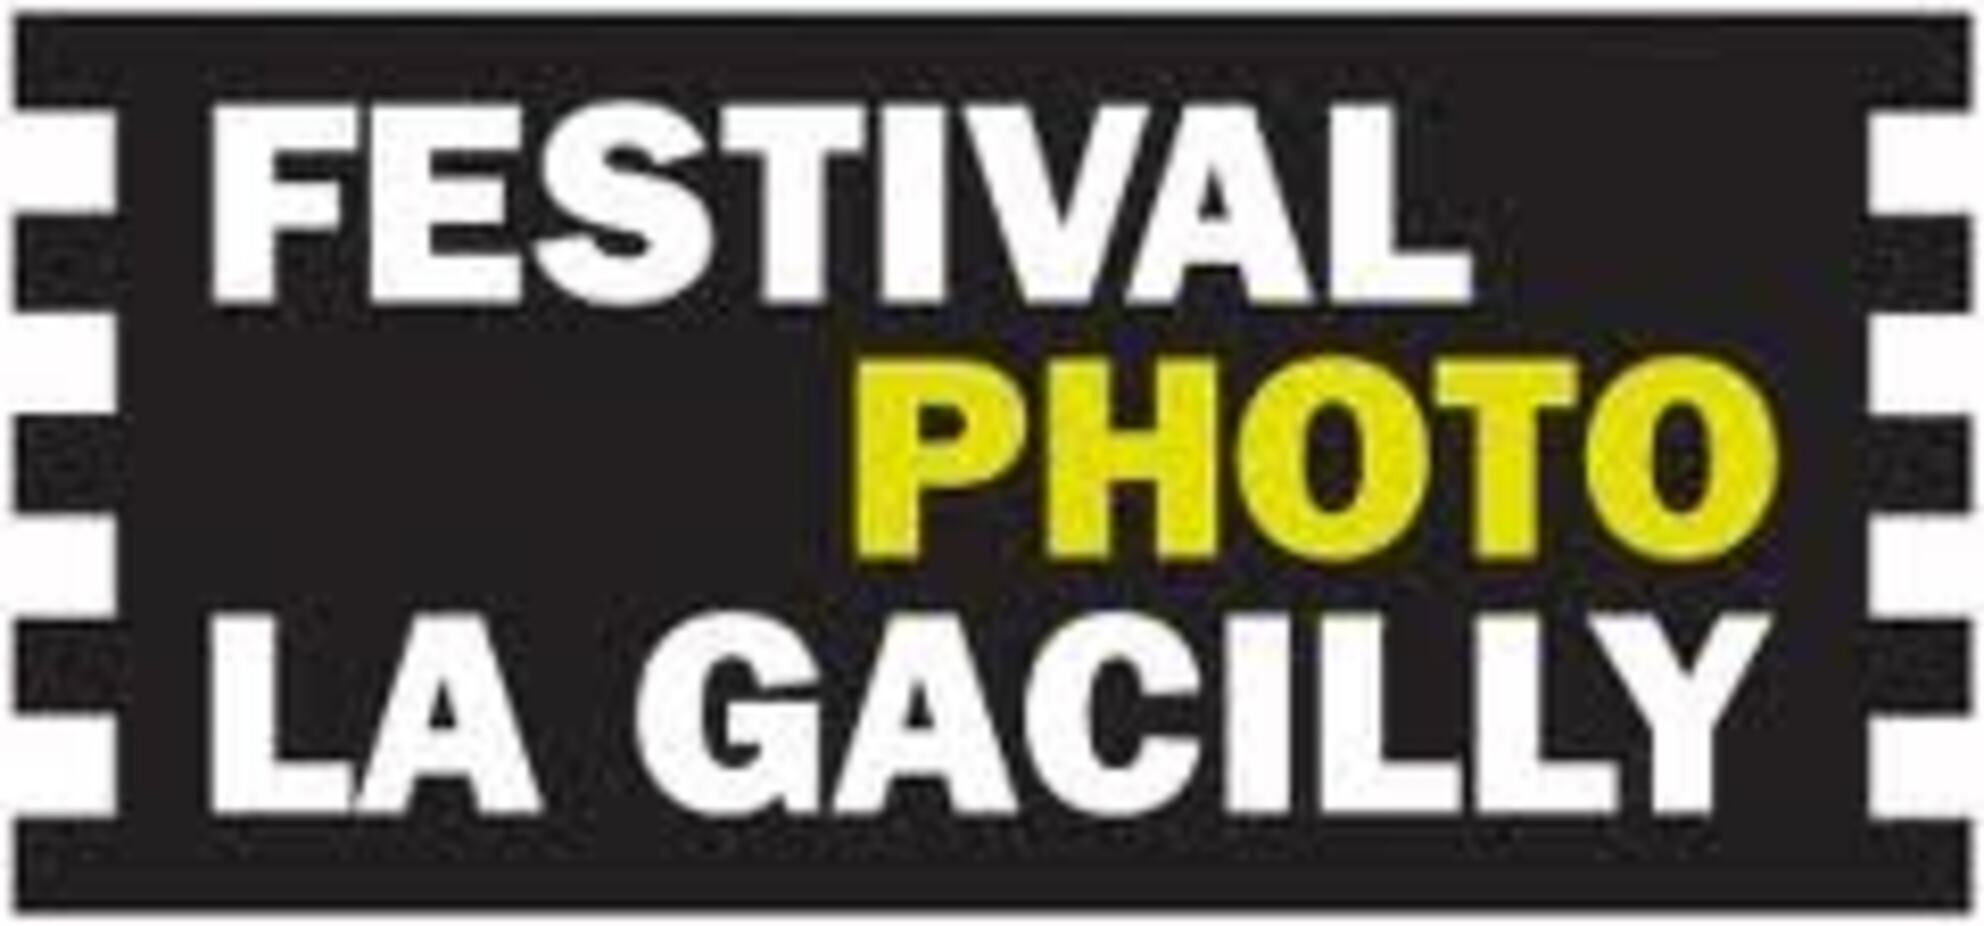 EXPOSITION PHOTO 2013 LA GACILLY 56   27/07/2013